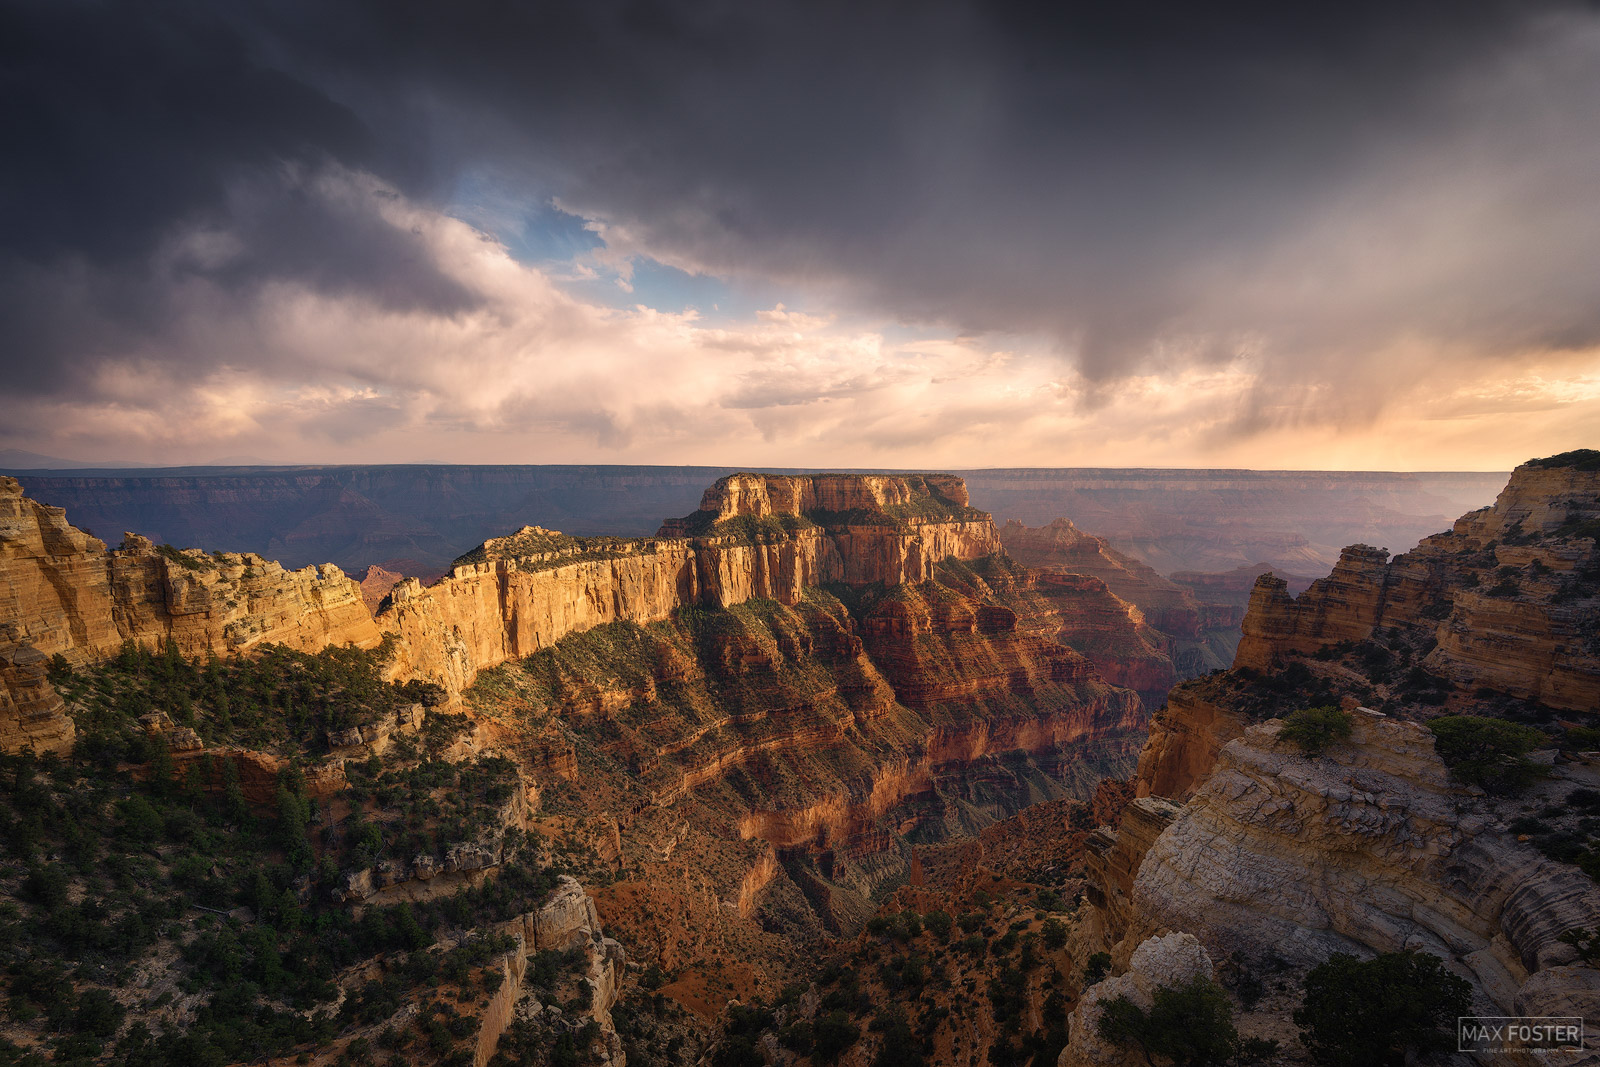 Fine Art Limited Edition of 50 Coconino Sandstone is a geologic formation named after its exposure in Coconino County, Arizona...